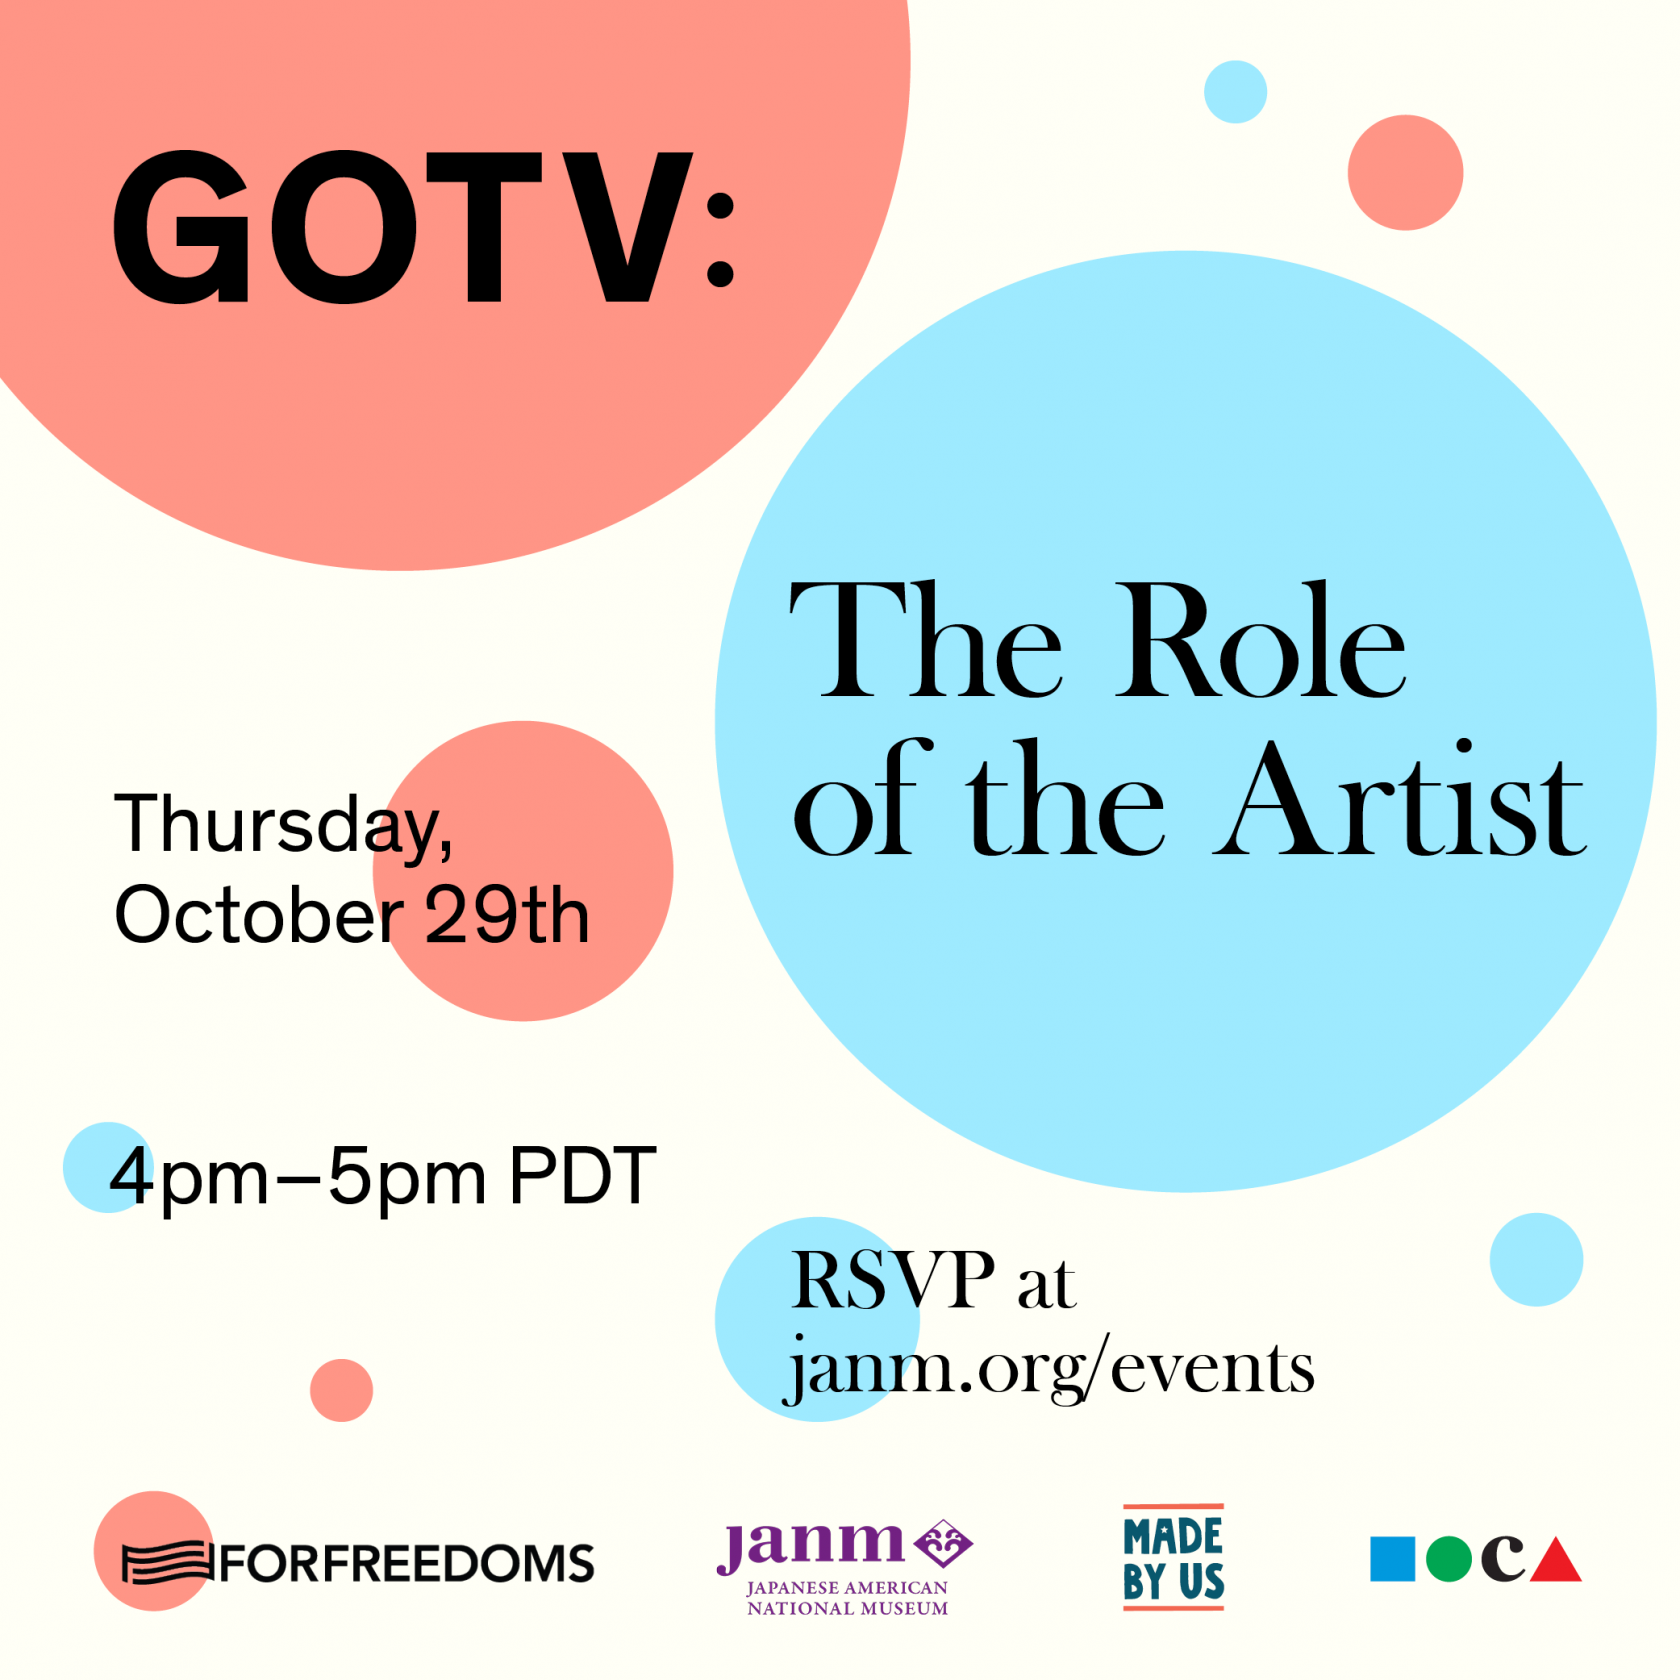 GOTV: The Role of the Artist